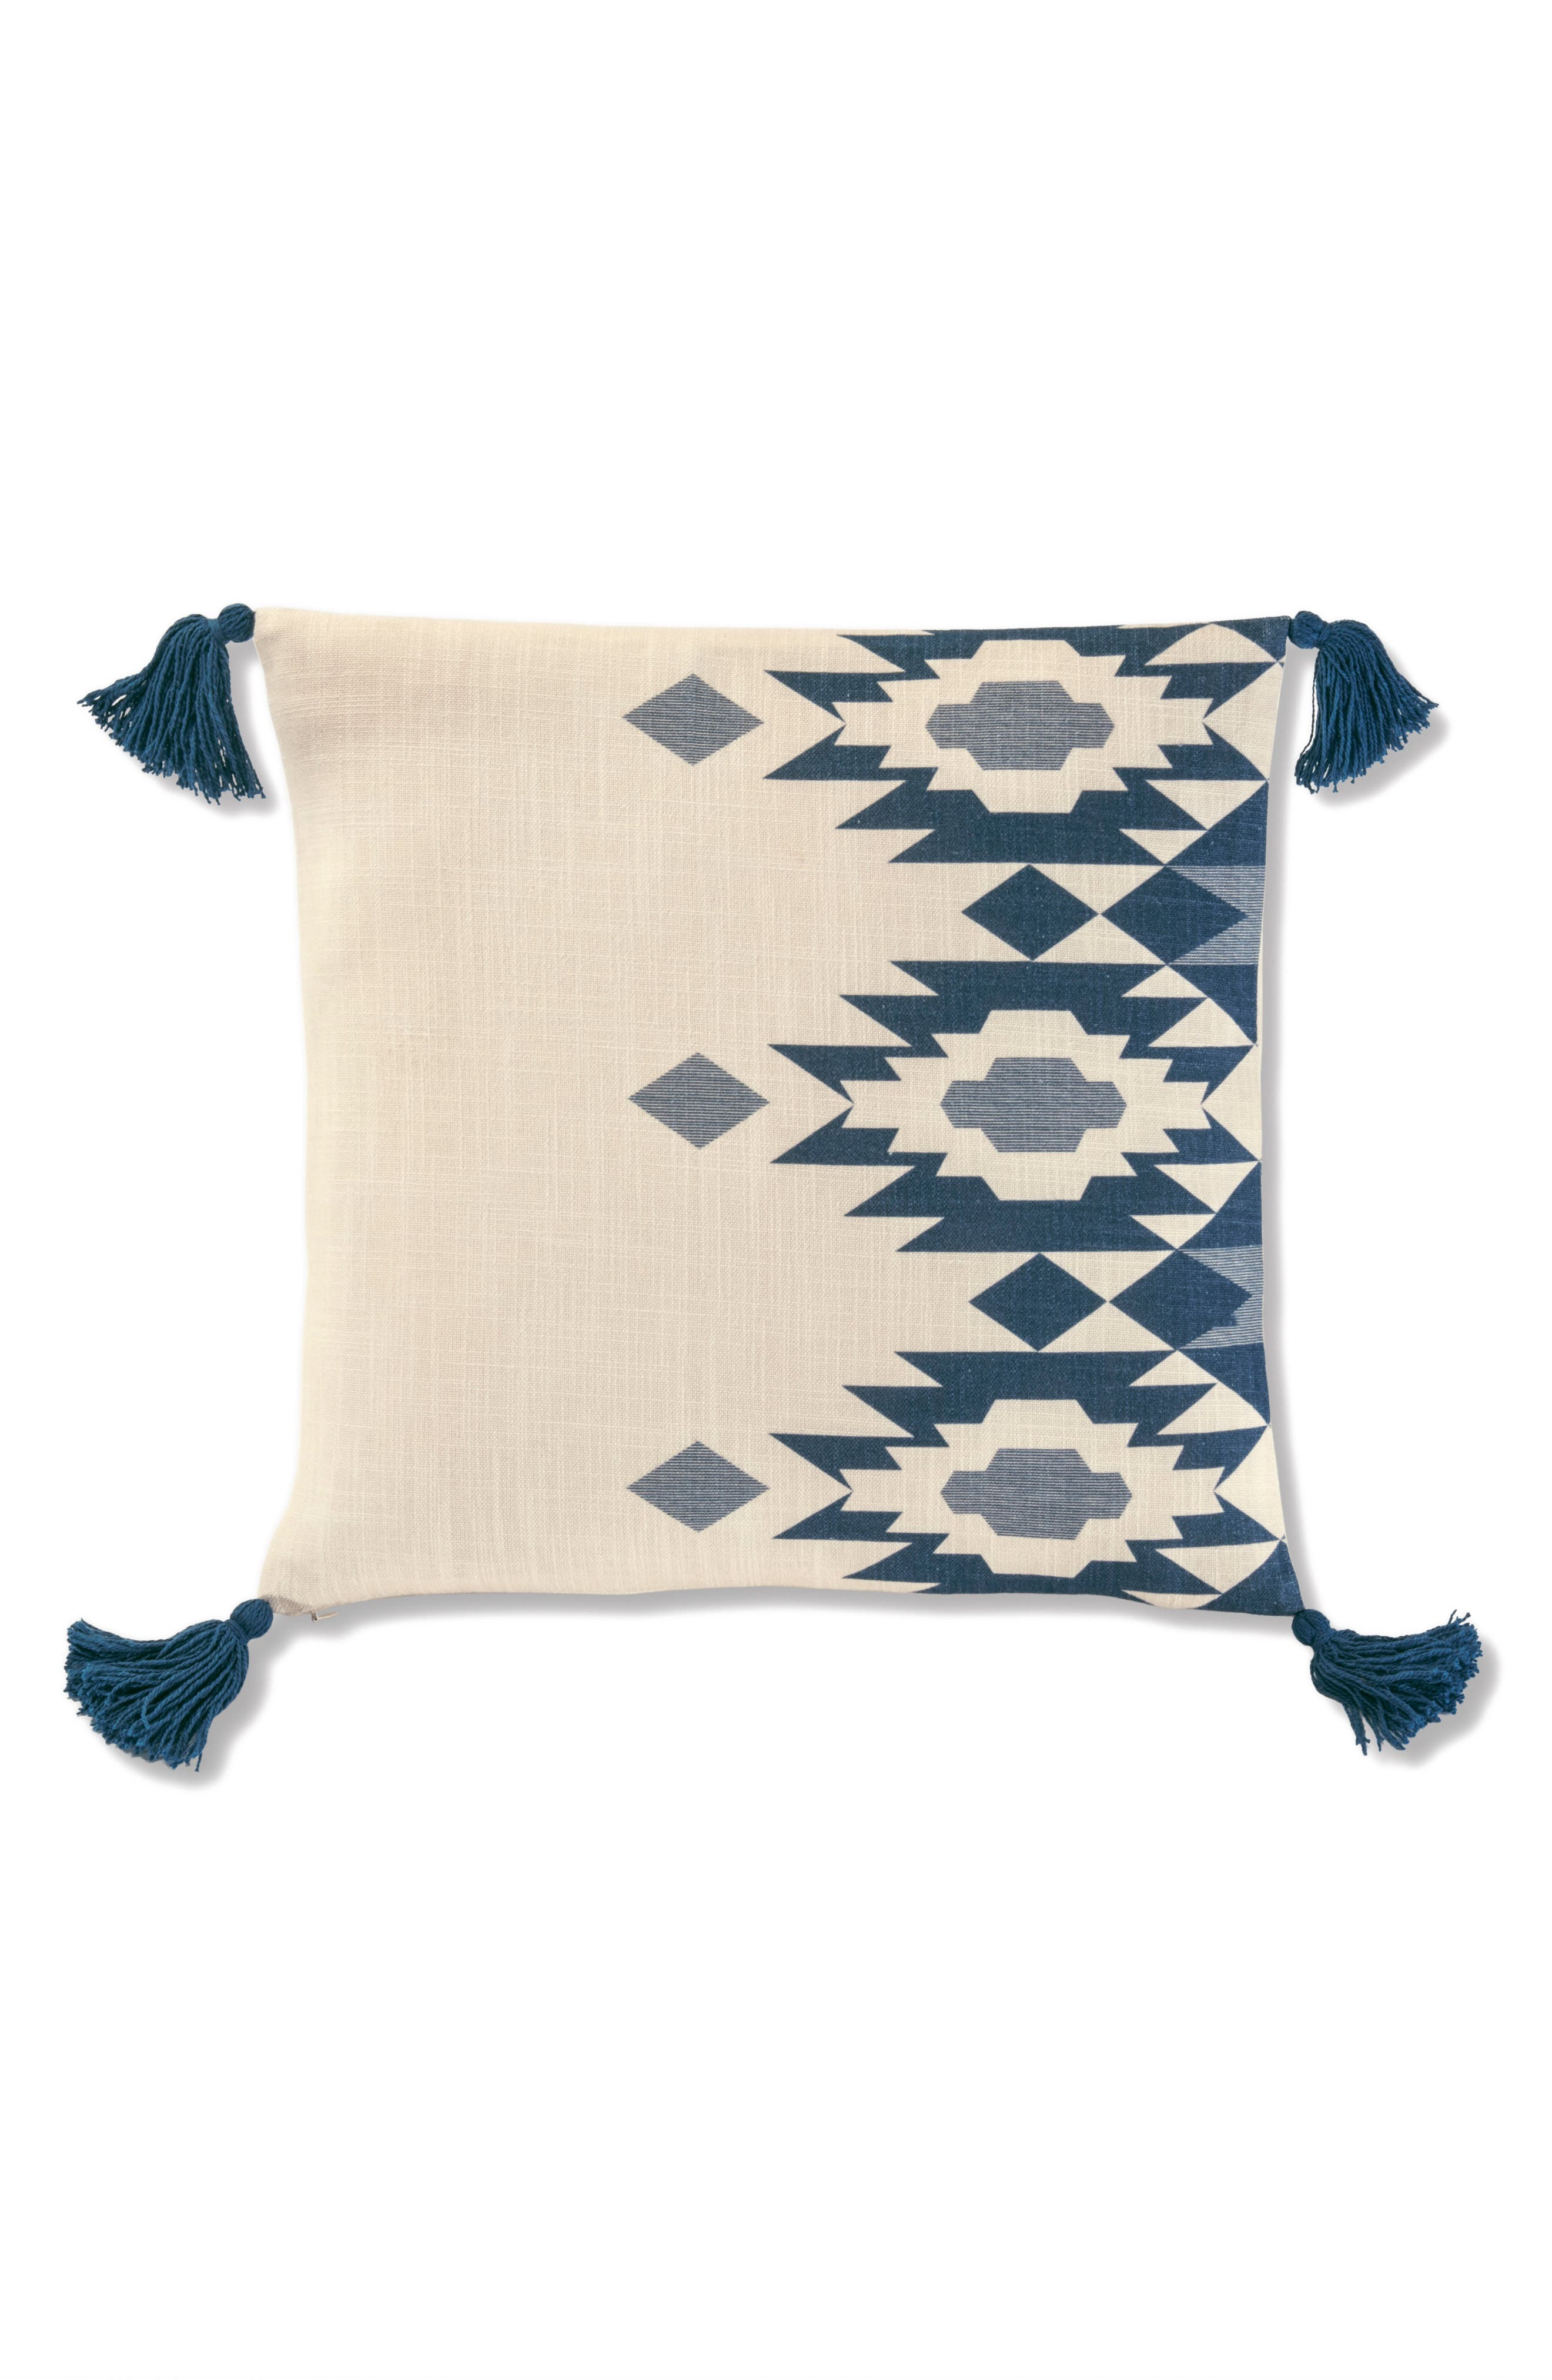 Yuma Star Printed Engineered Accent Pillow,                         Main,                         color, Blue